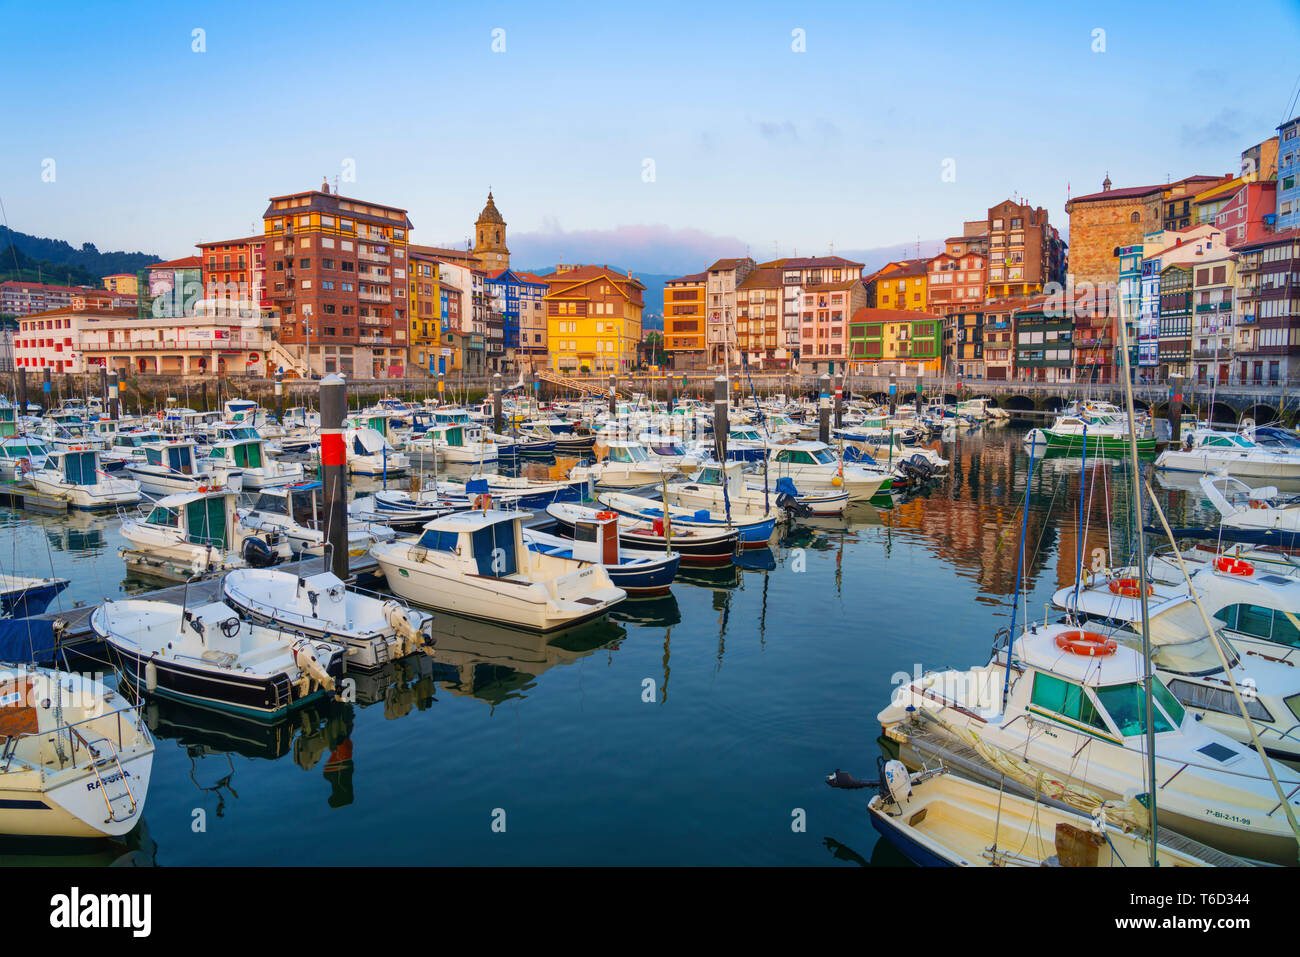 Spain, Vizcaya Province, Basque Country, Bermeo, harbour. - Stock Image